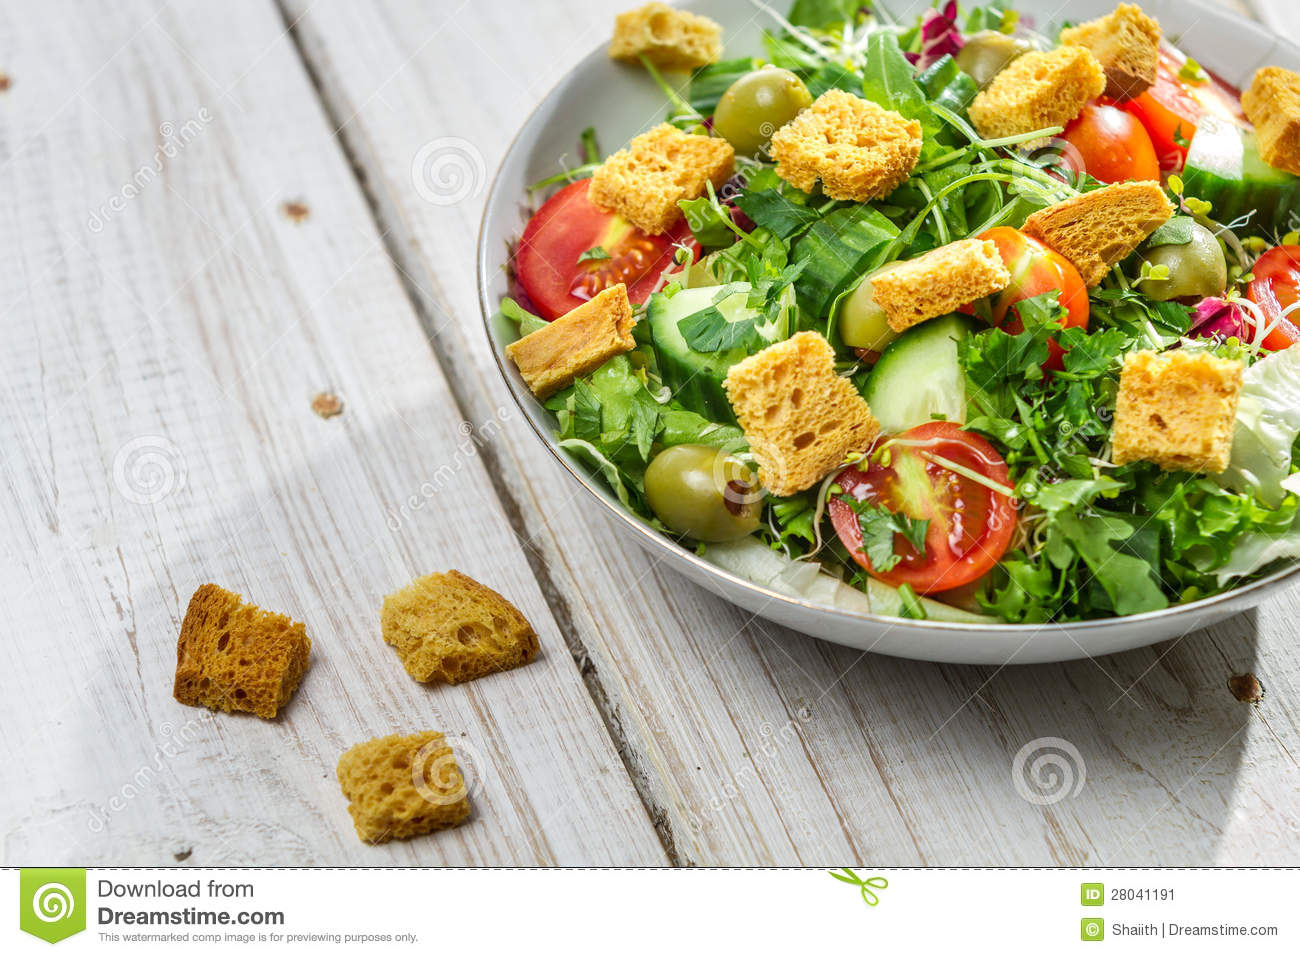 Download Close-up On A Fresh Salad With Chicken Stock Image - Image of eating, barbecue: 28041191